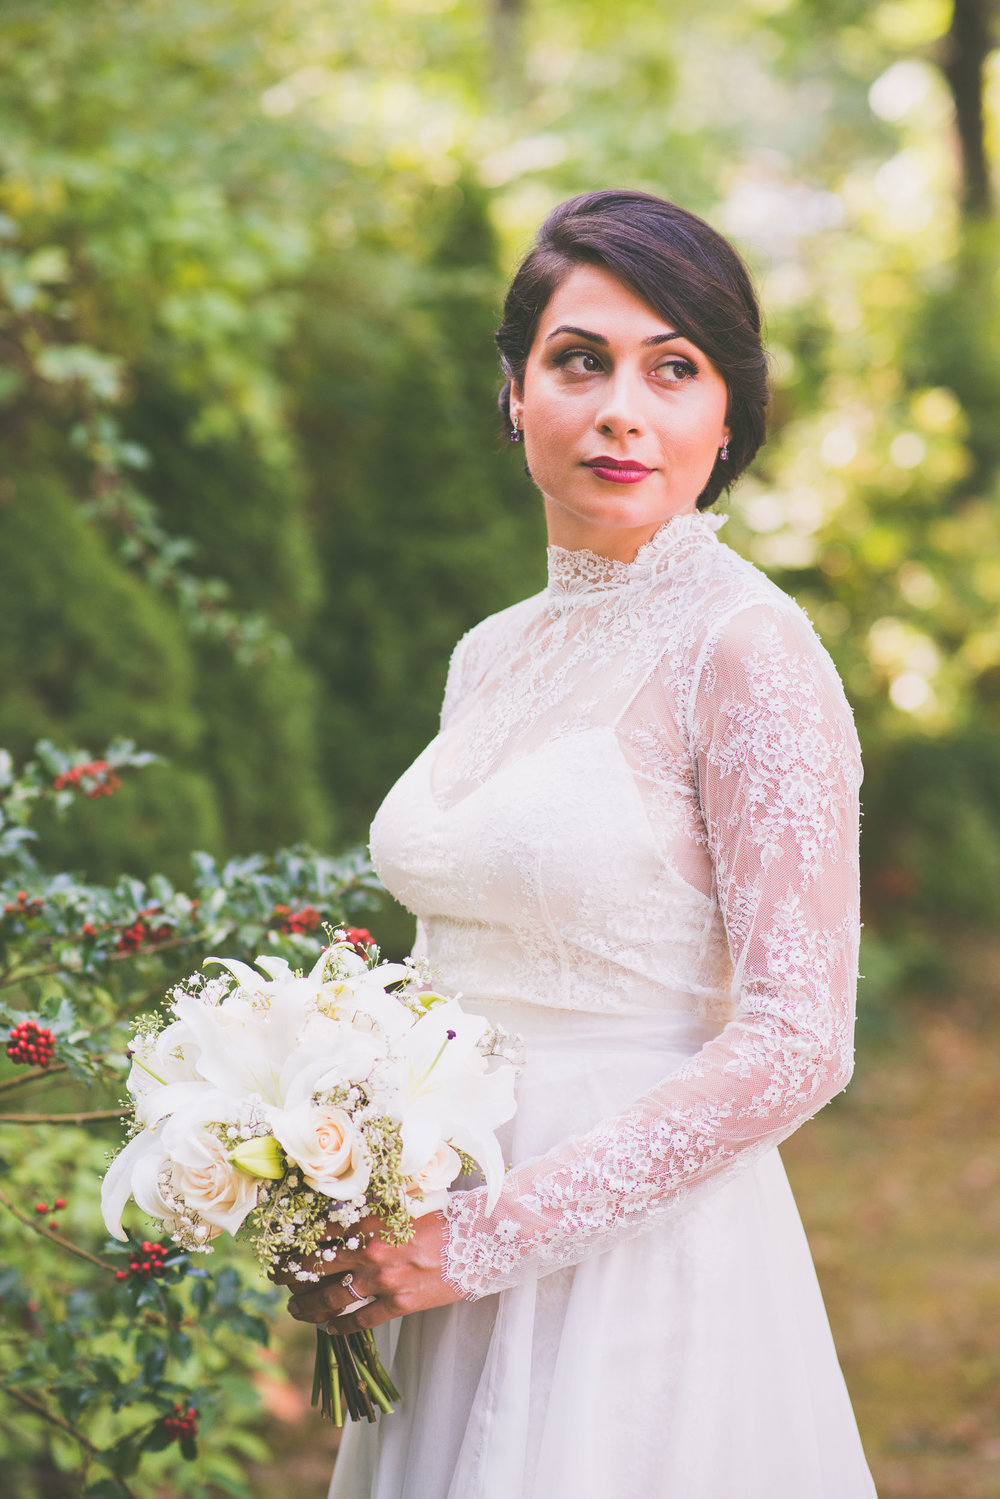 woman portrait - Weddings - Photo credit Nicola Bailey.jpg